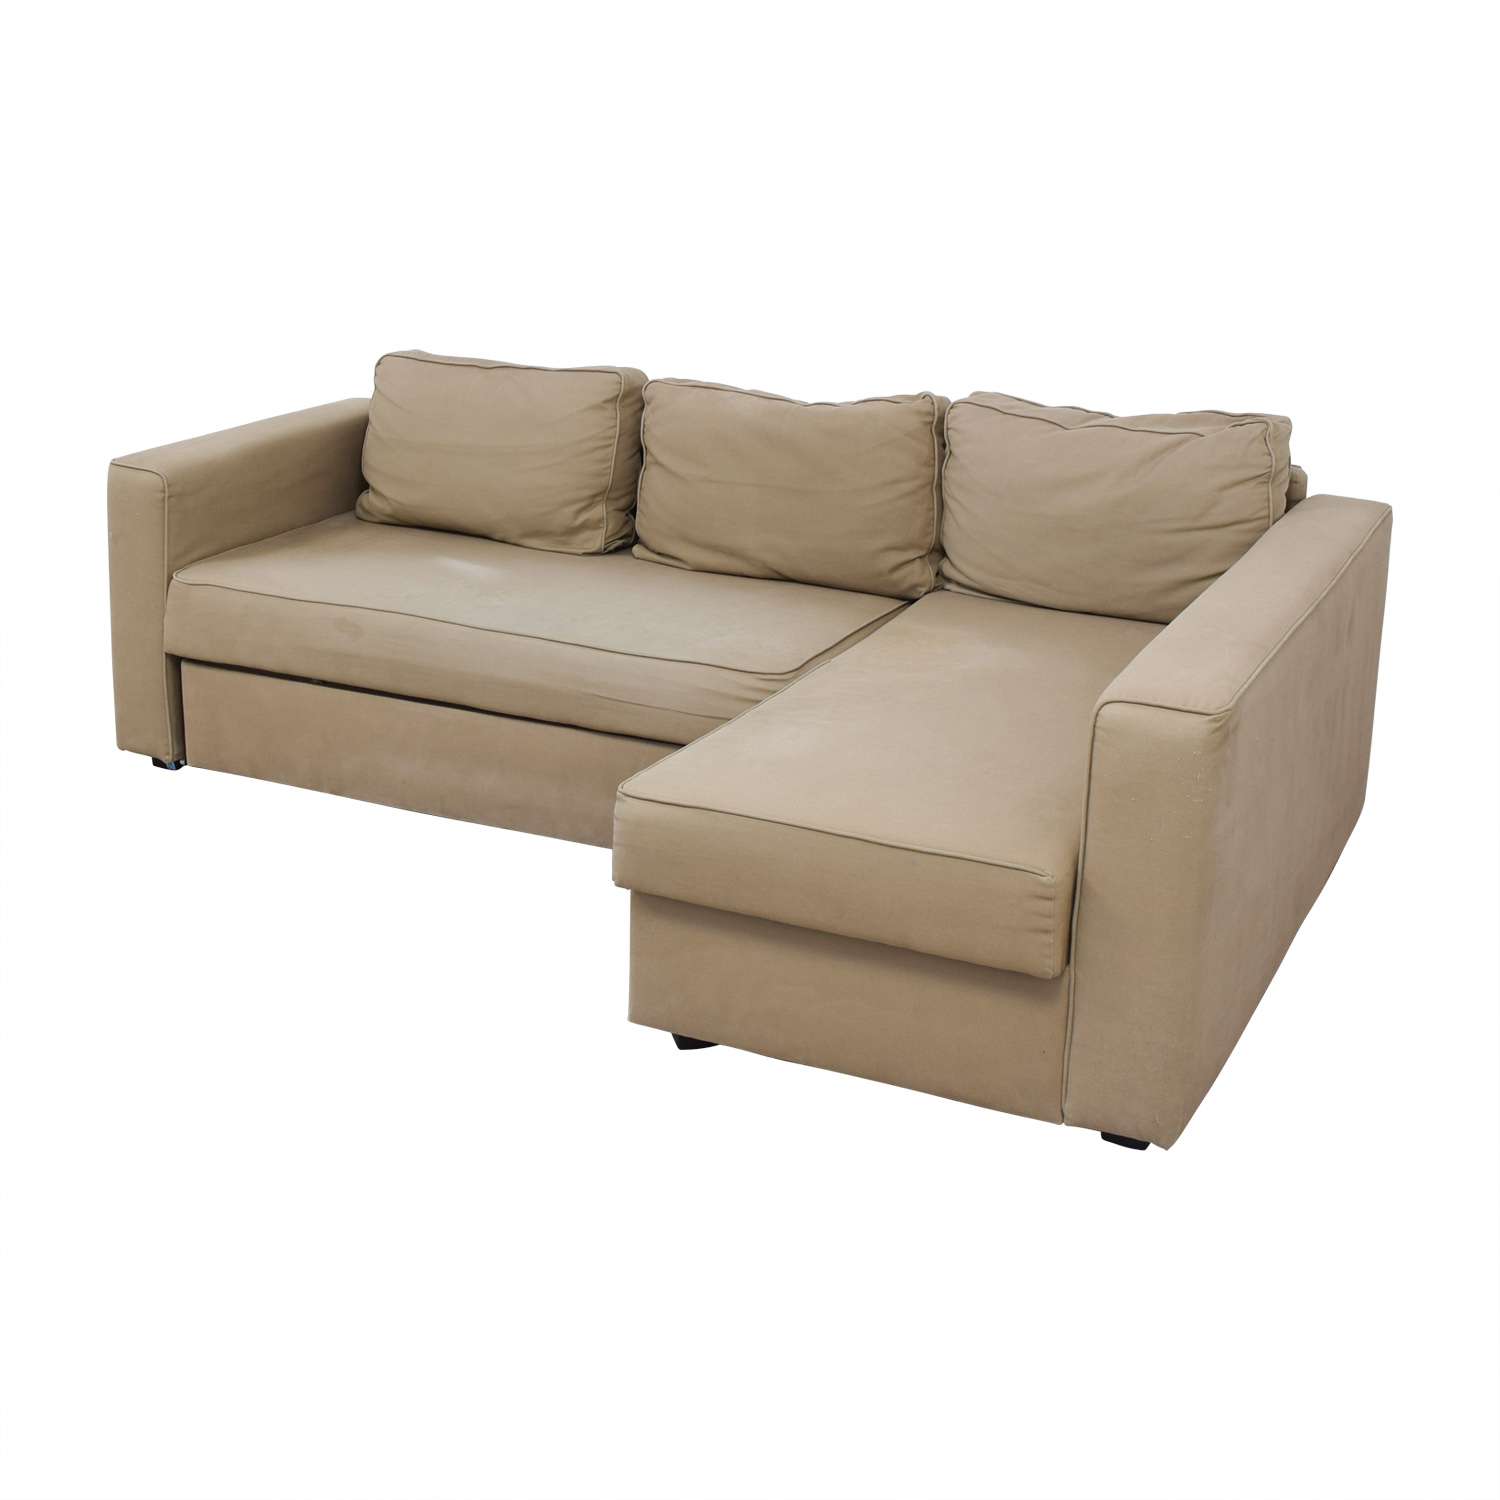 manstad sofa bed murah di cianjur 62 off ikea sectional with